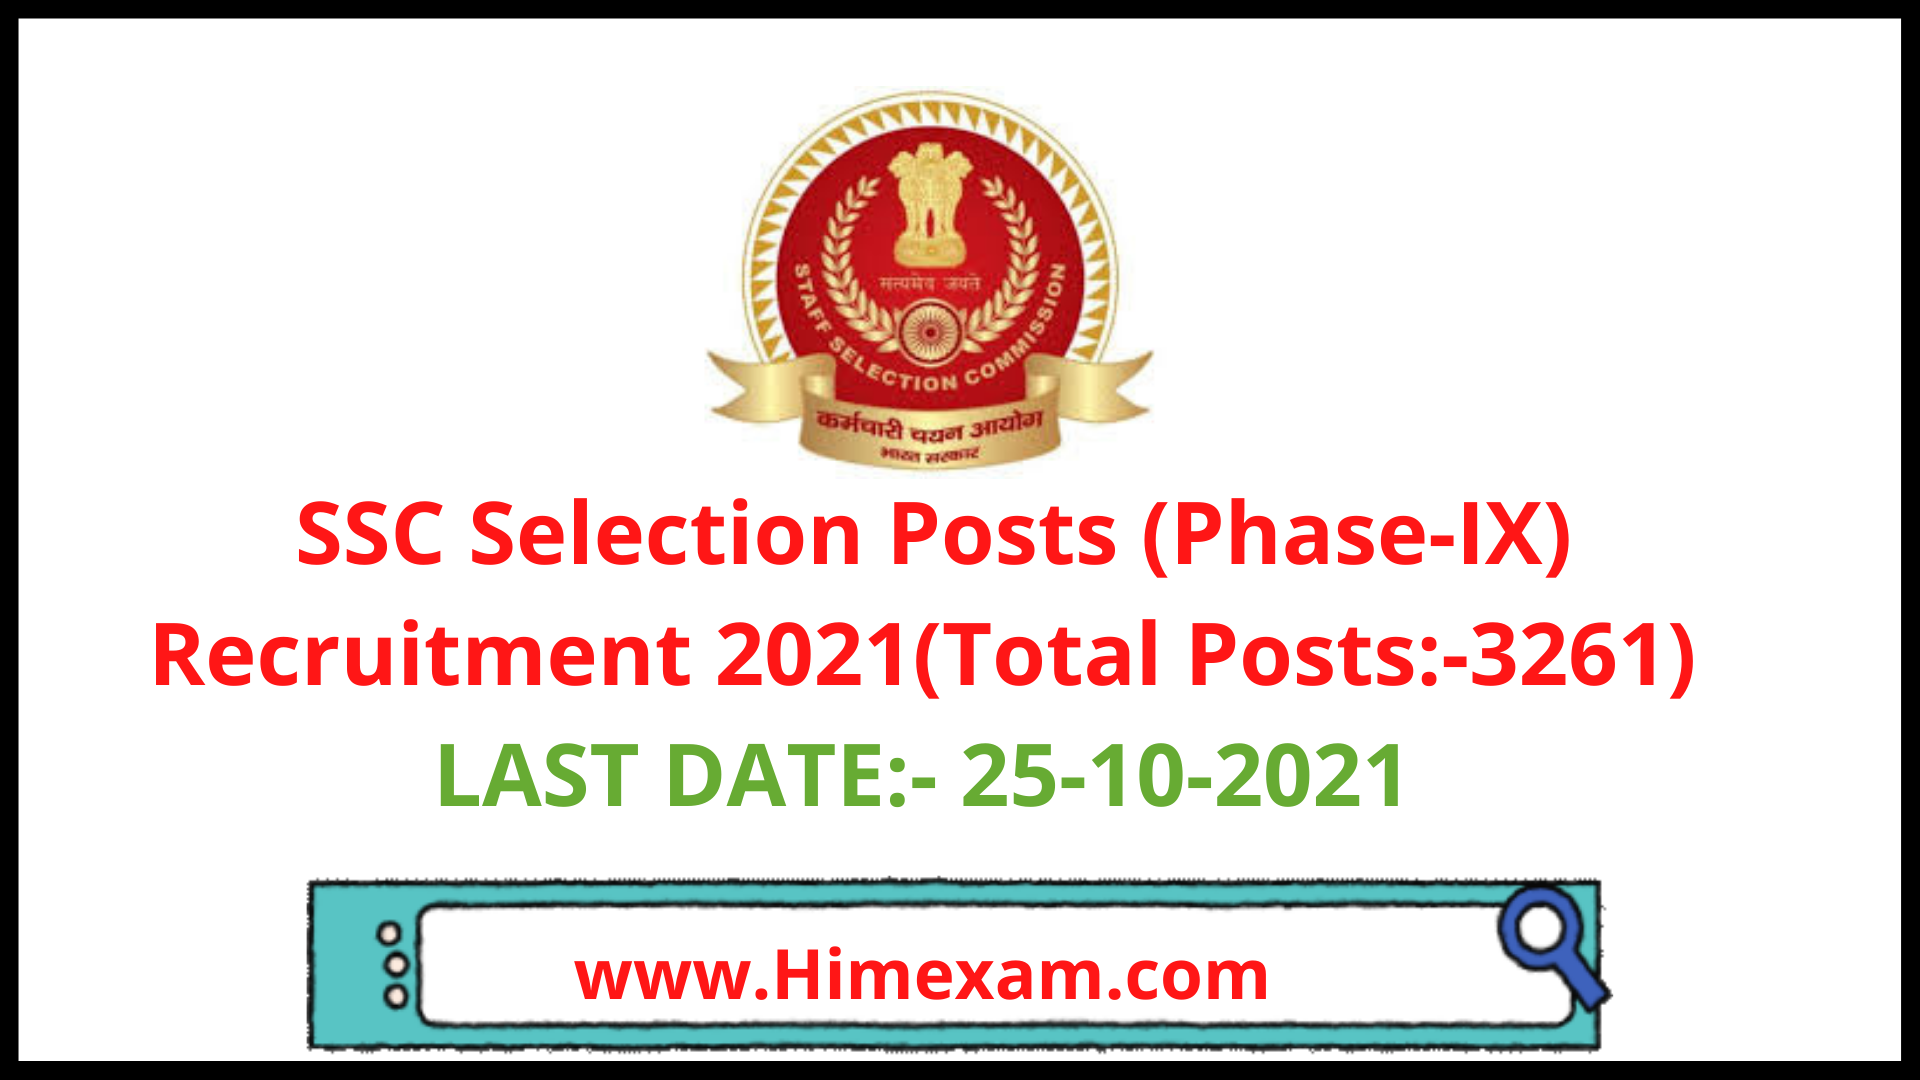 SSC Selection Posts (Phase-IX) Recruitment 2021(Total Posts:-3261)